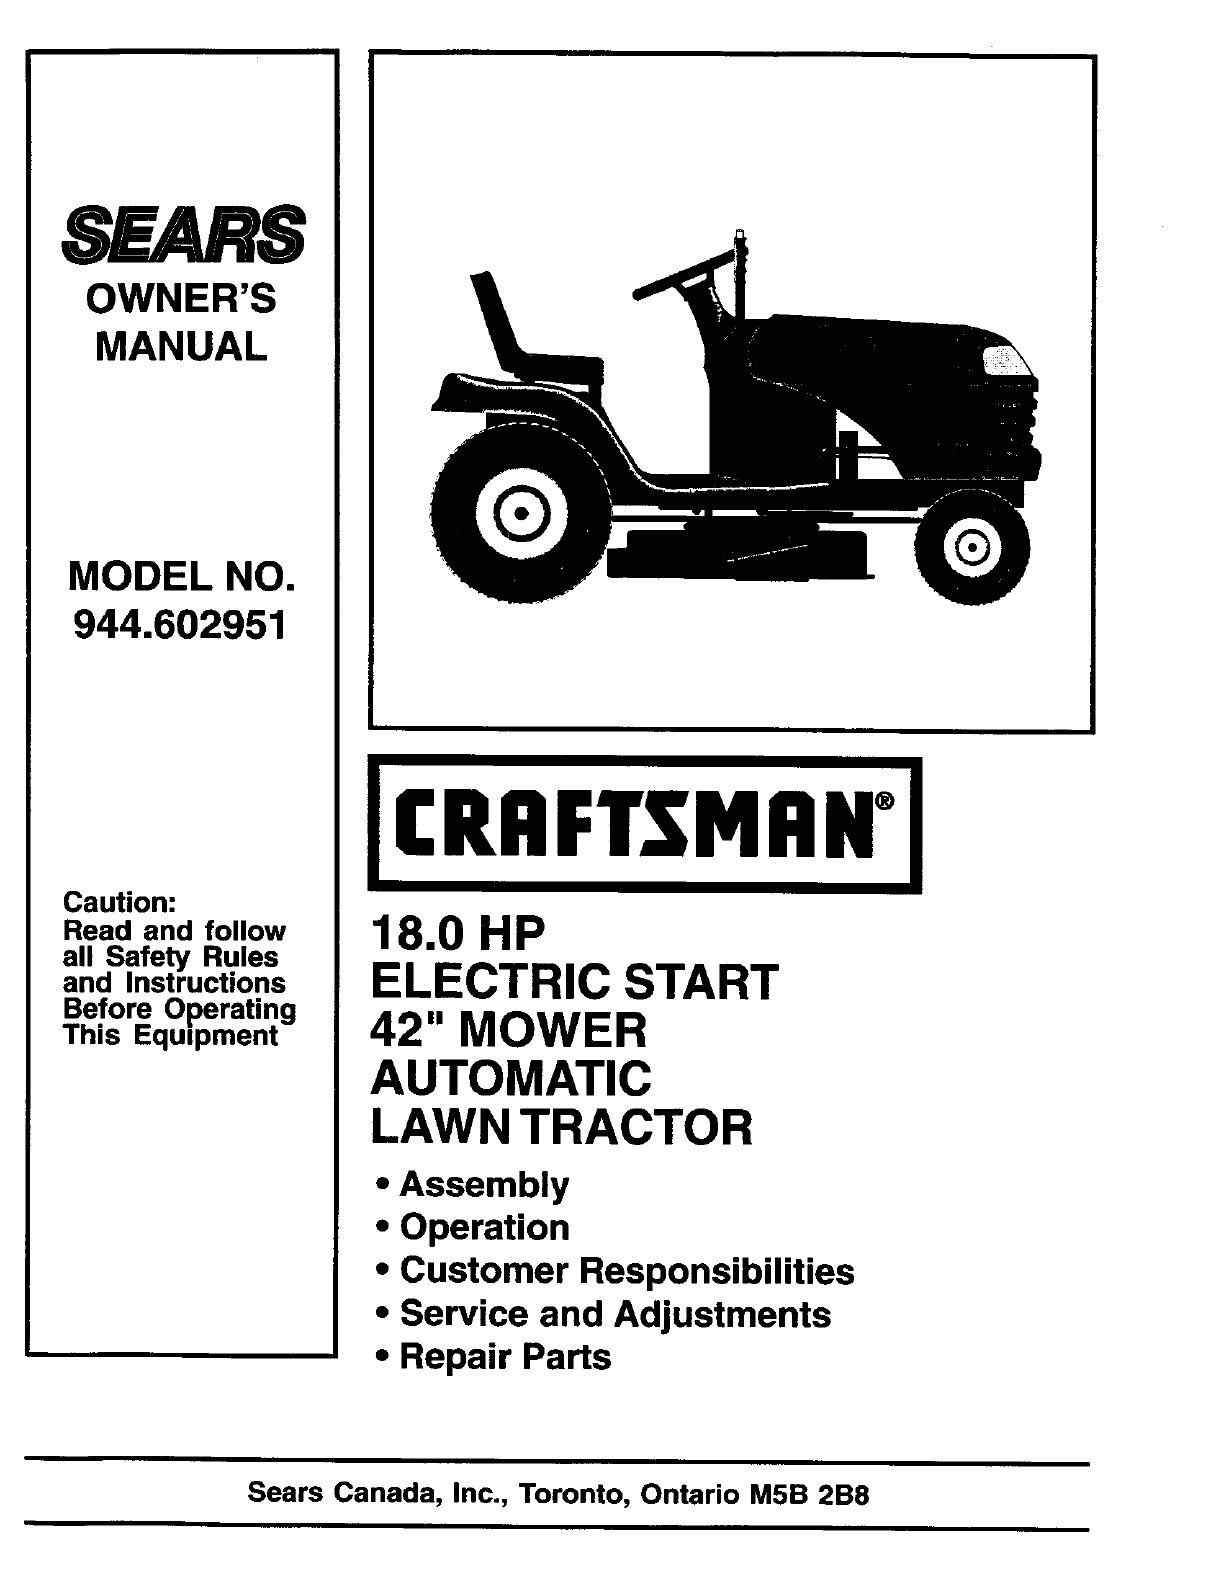 Craftsman Riding Lawn Mower Repair : Craftsman riding lawn mower parts diagram automotive